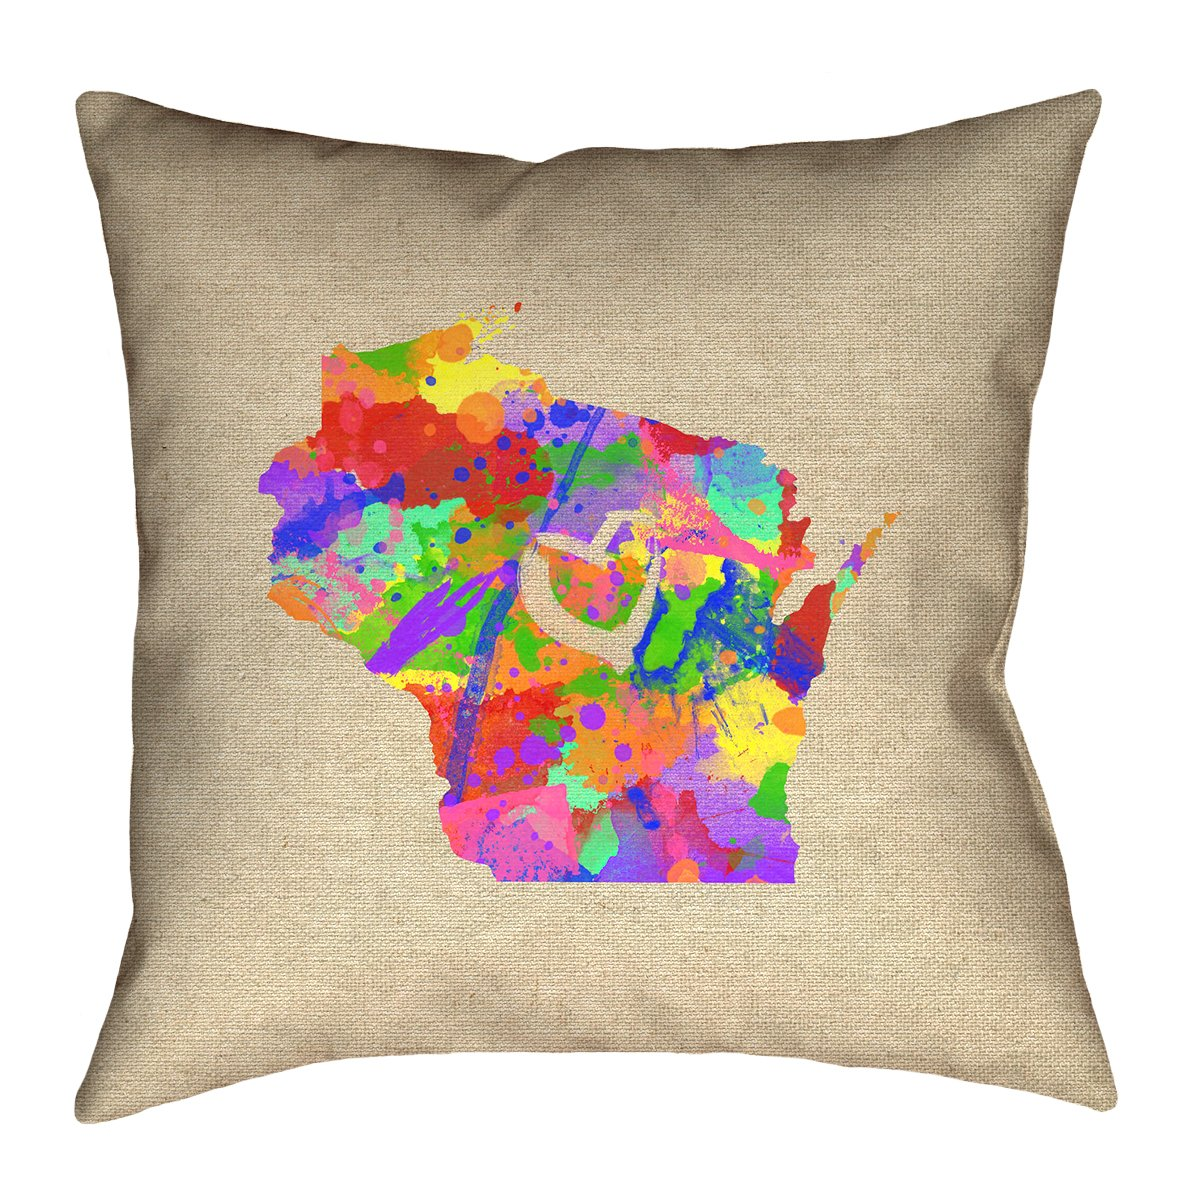 ArtVerse Katelyn Smith 40' x 40' Floor Double Sided Print with Concealed Zipper & Insert Wisconsin Love Watercolor Pillow SMI438F4040L